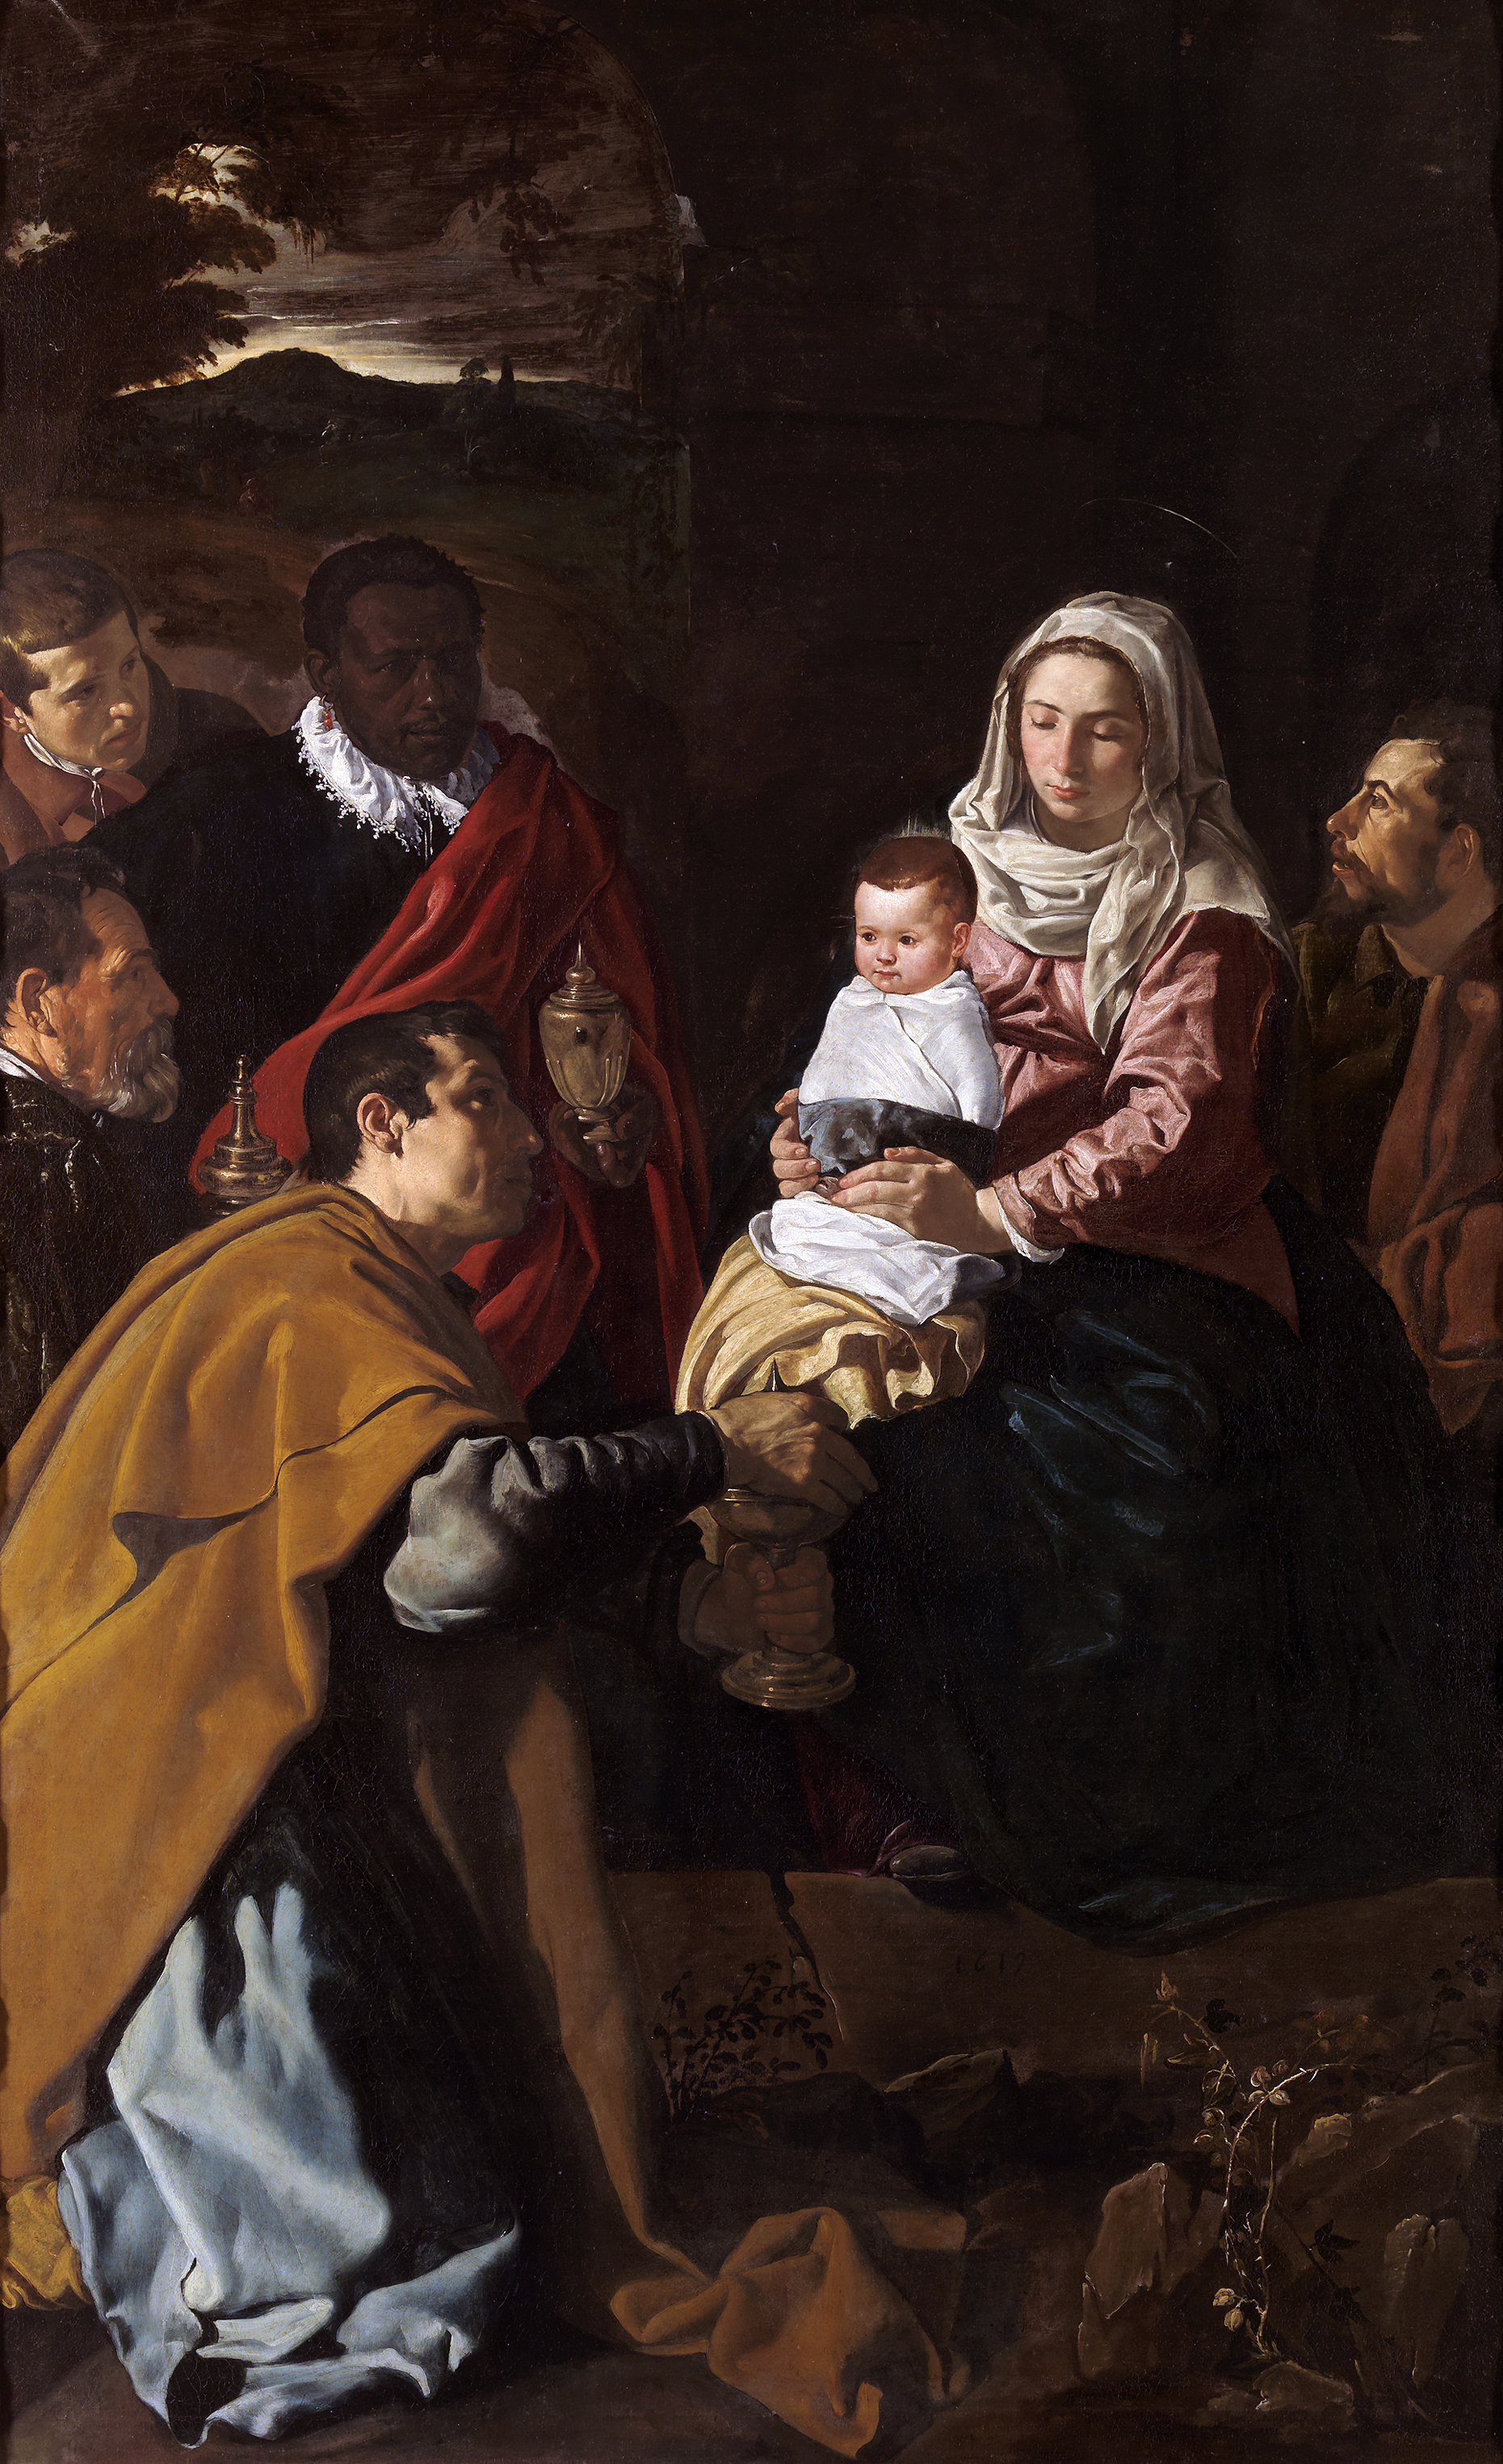 Pinturas Barrocas Adoration Of The Magi (velázquez) - Wikipedia